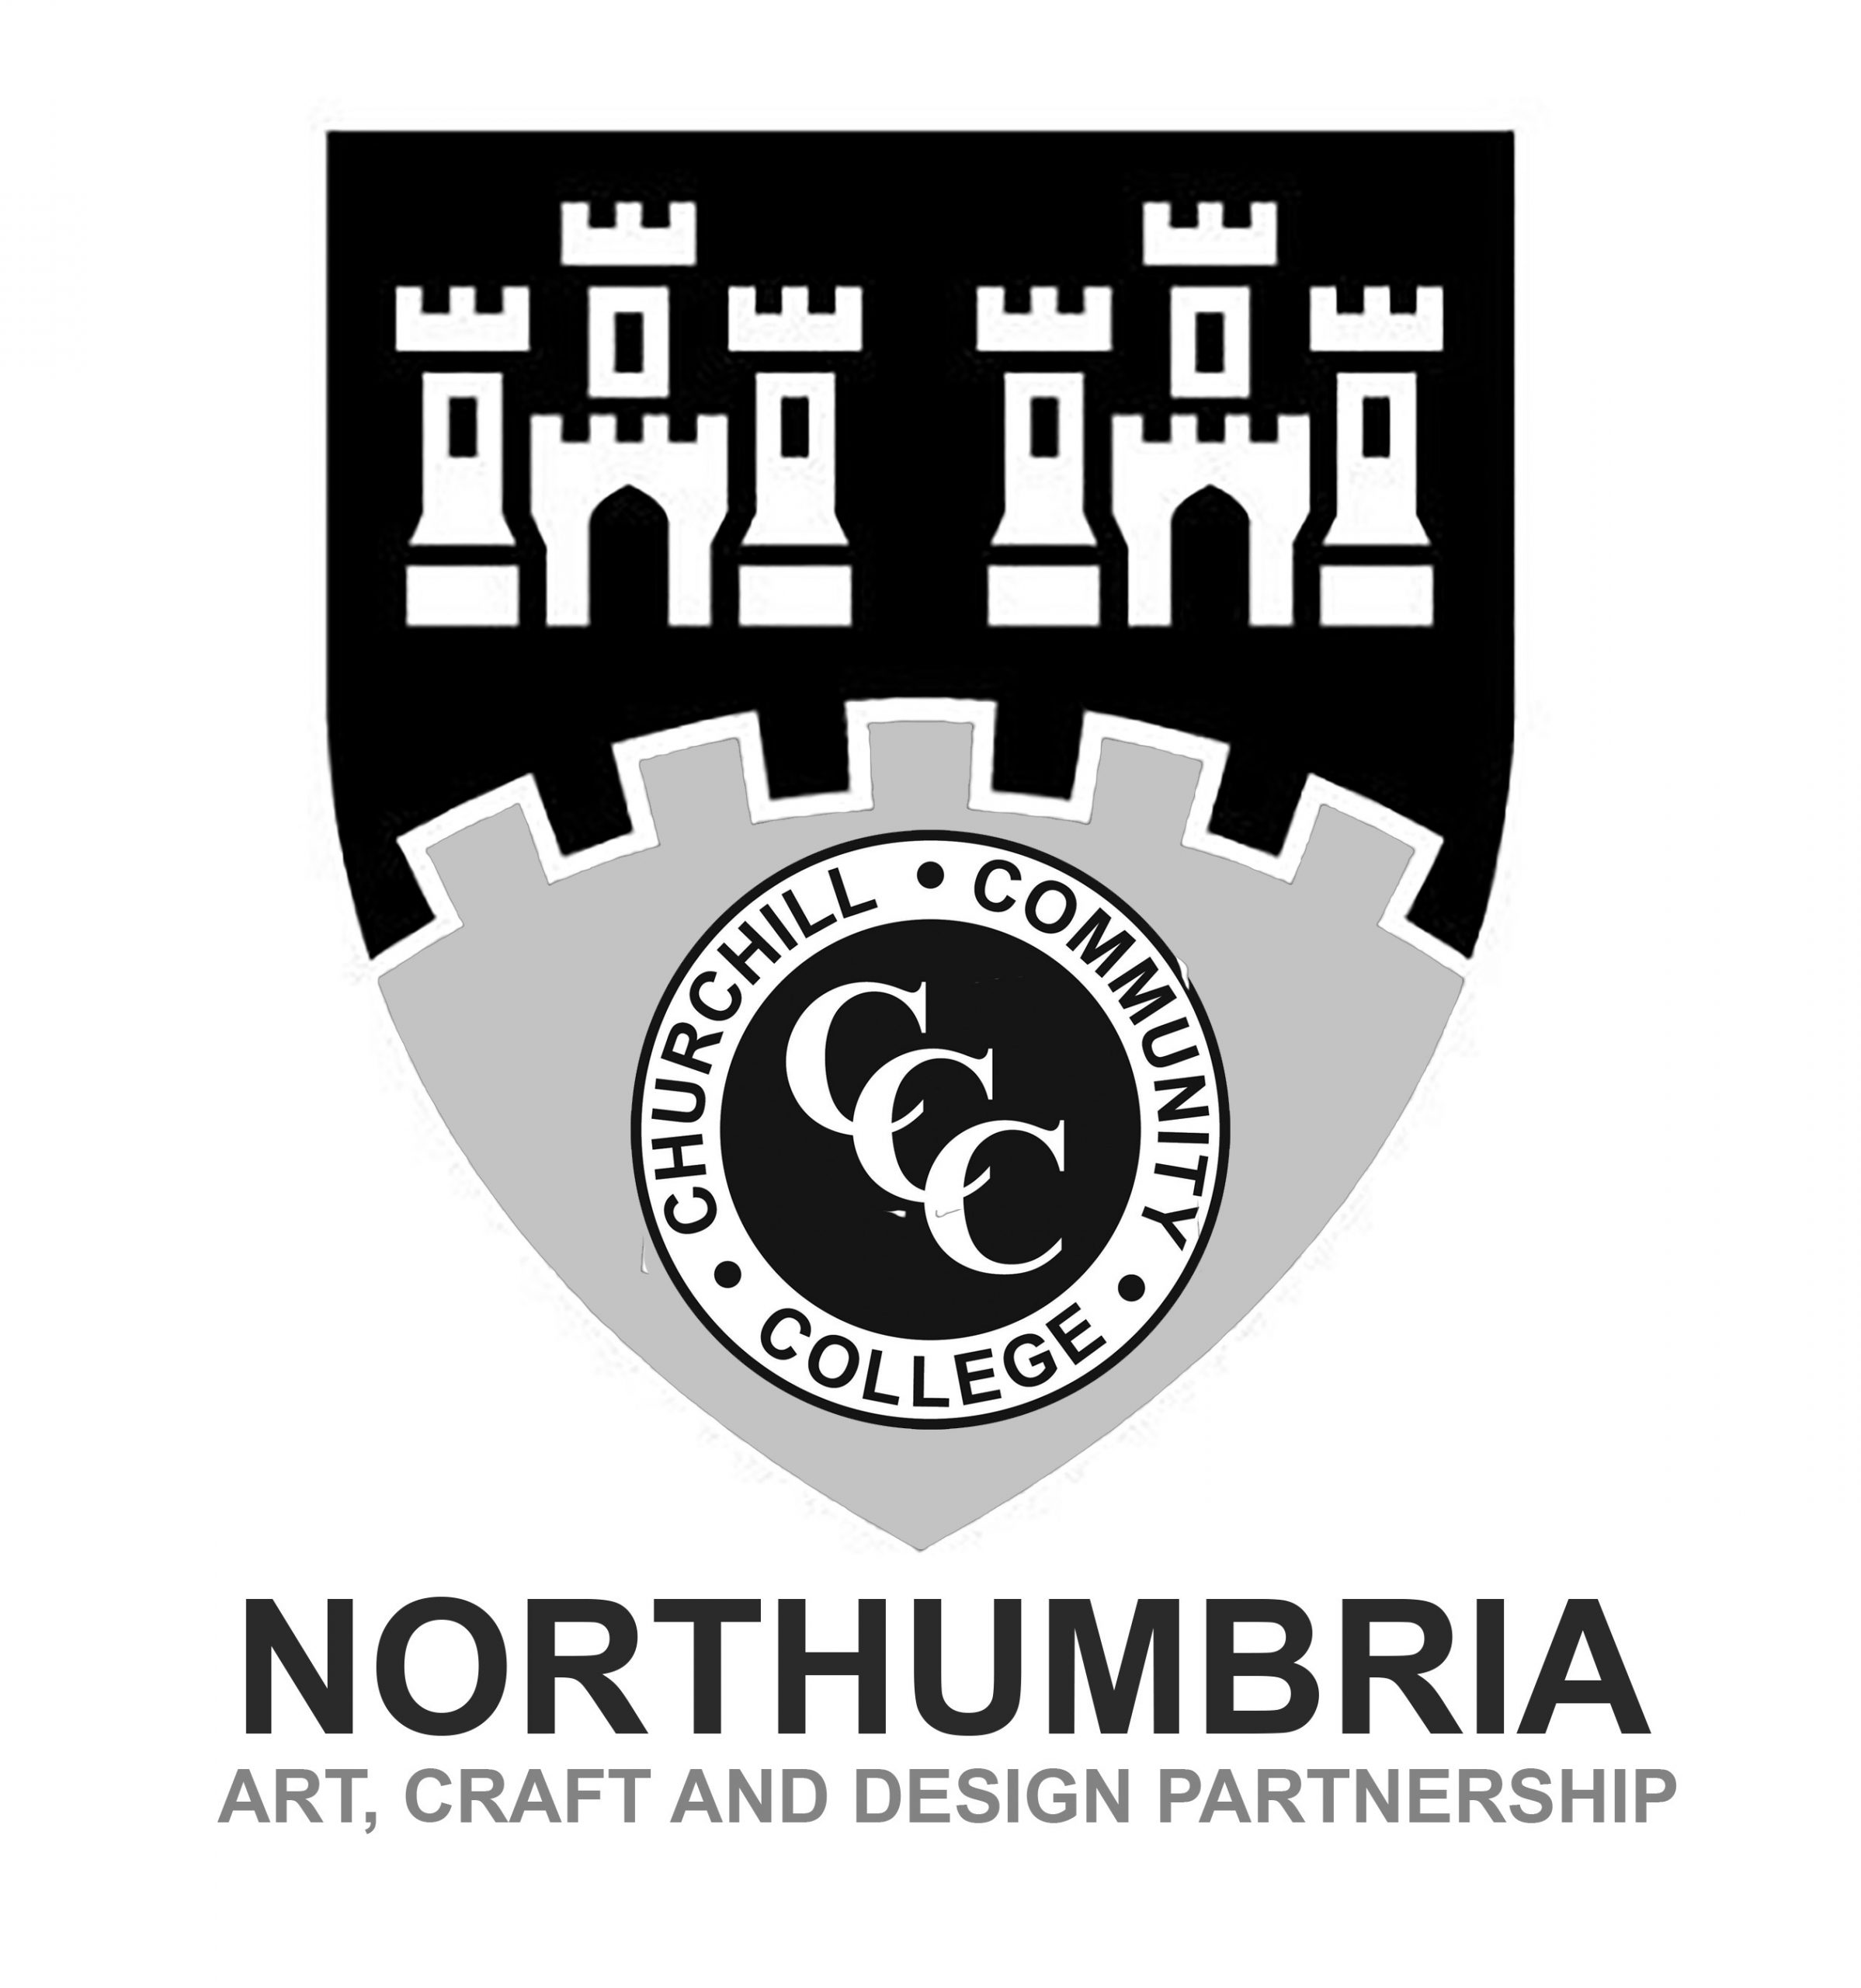 Northumbria Art, Craft and Design Partnership Logo